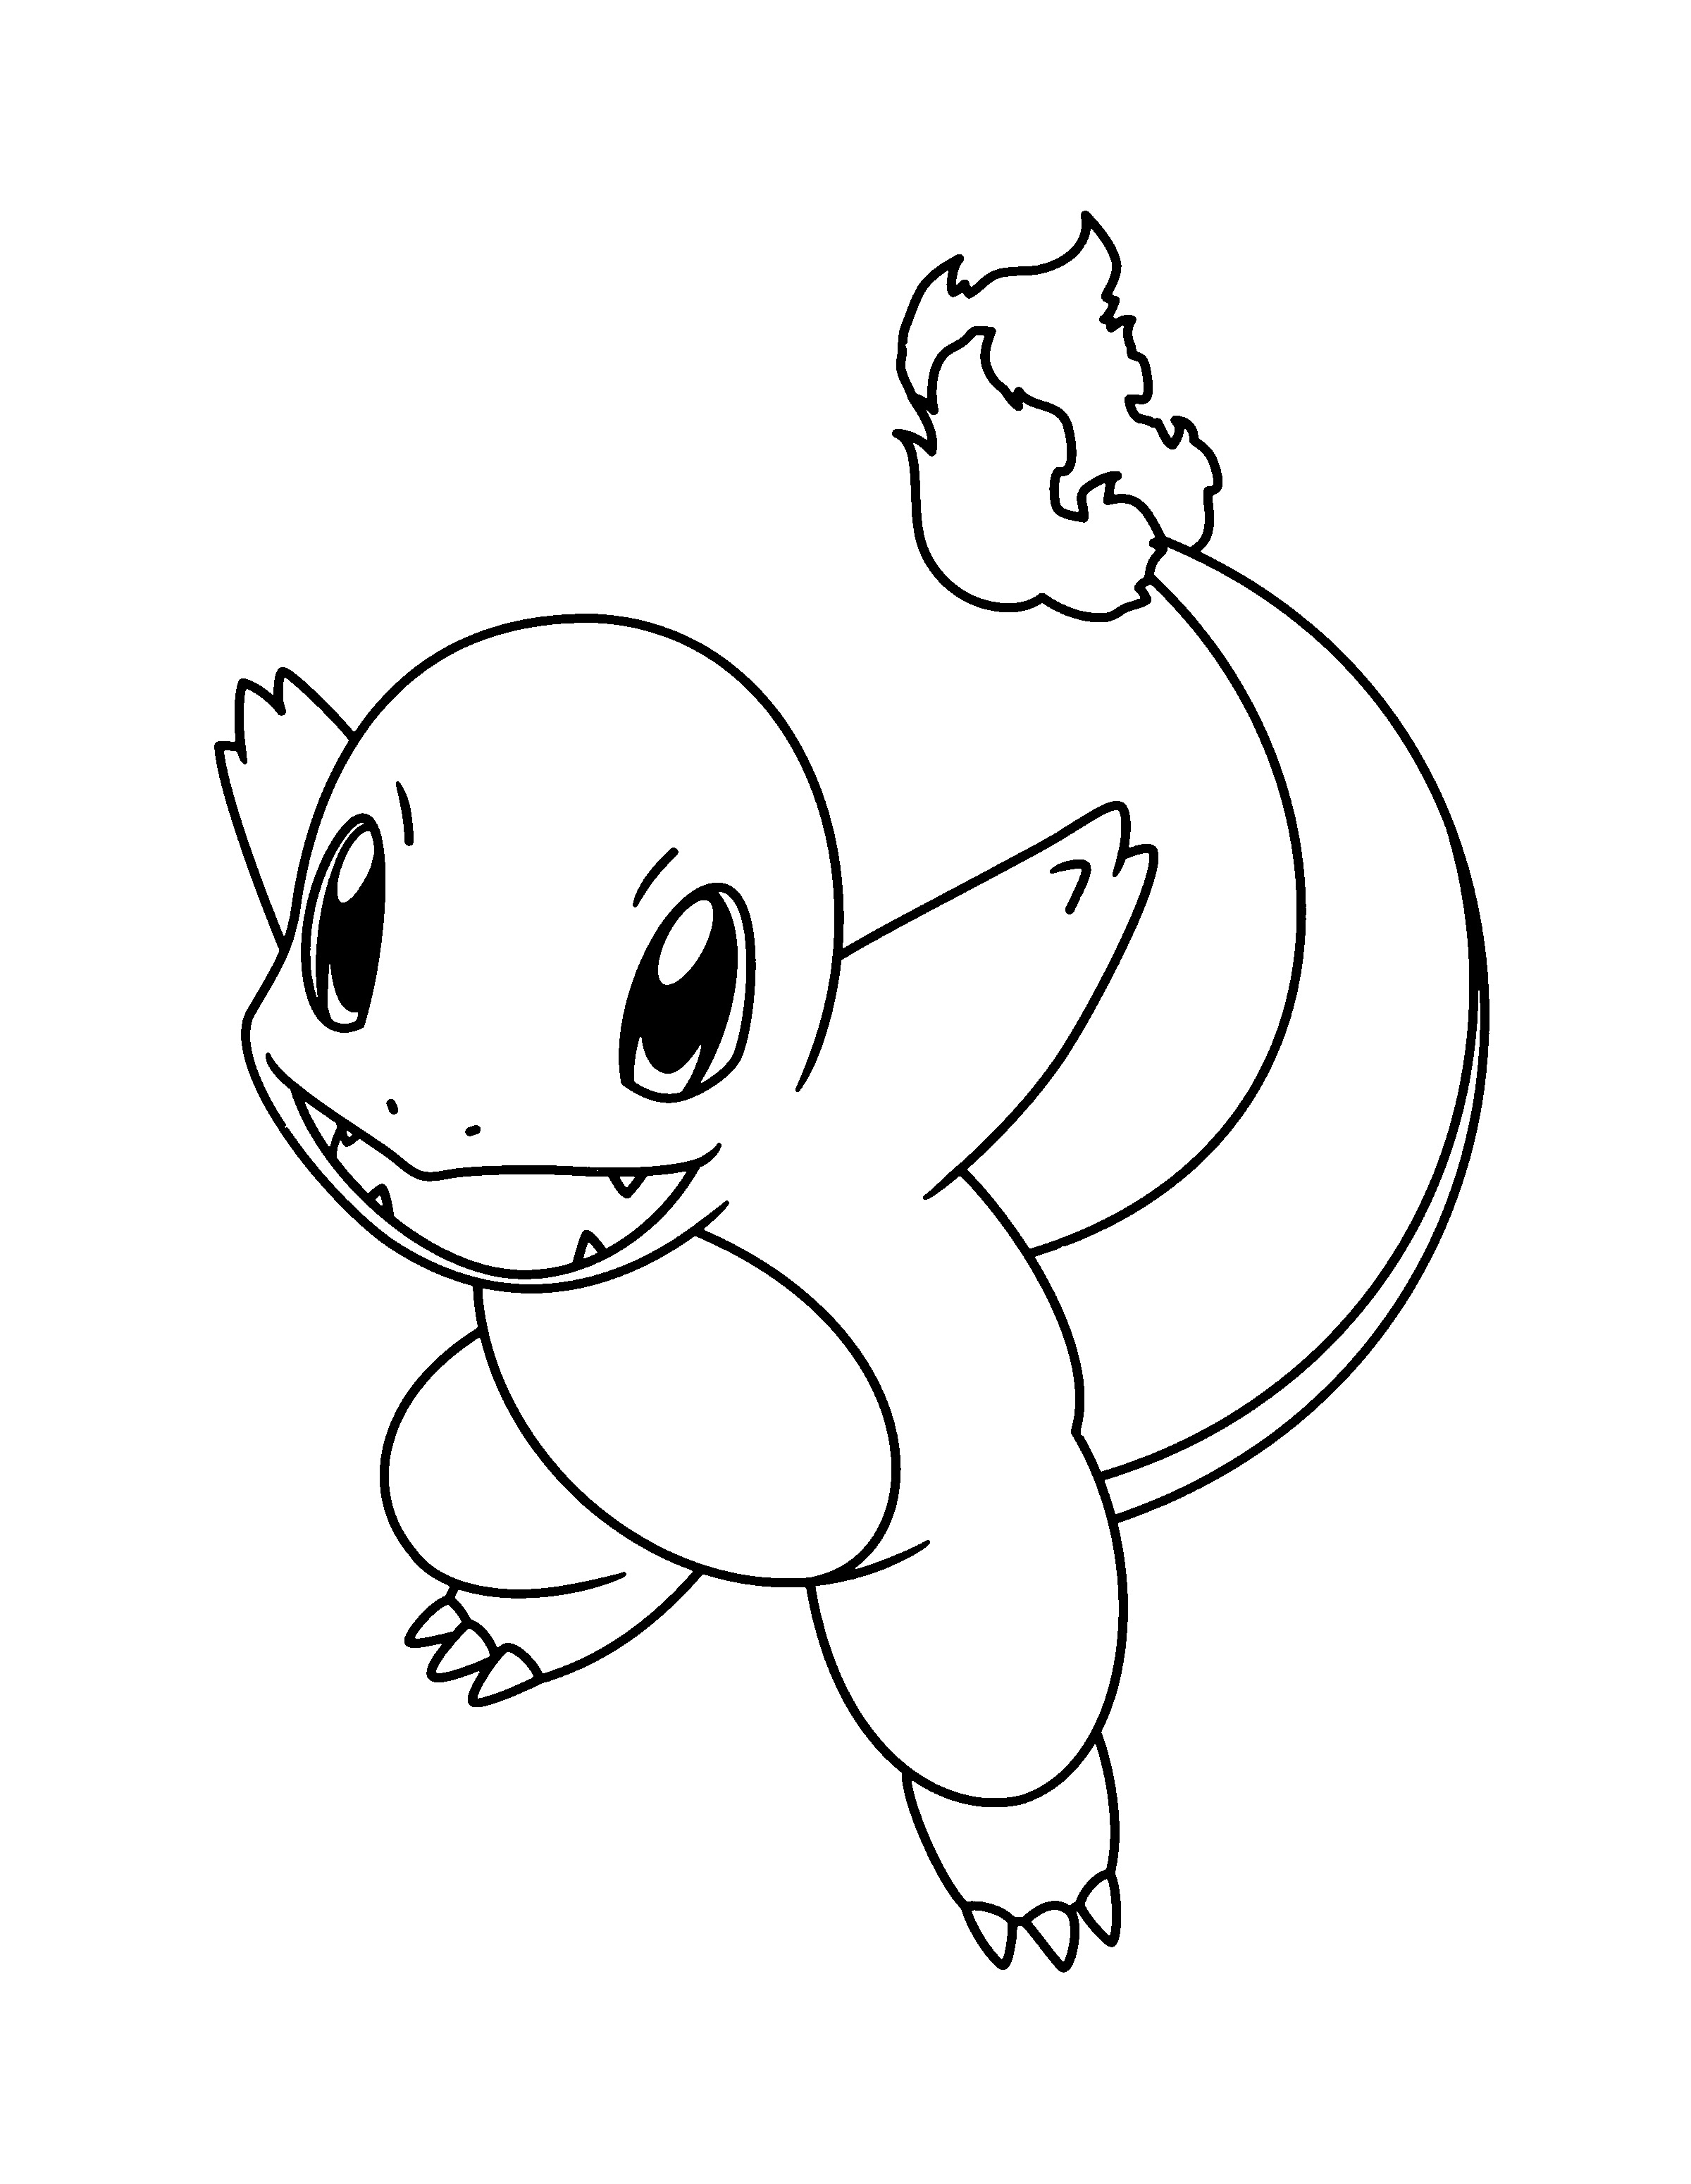 pictures of charmander the pokemon charmander no04 pokemon generation i all pokemon charmander pictures of pokemon the